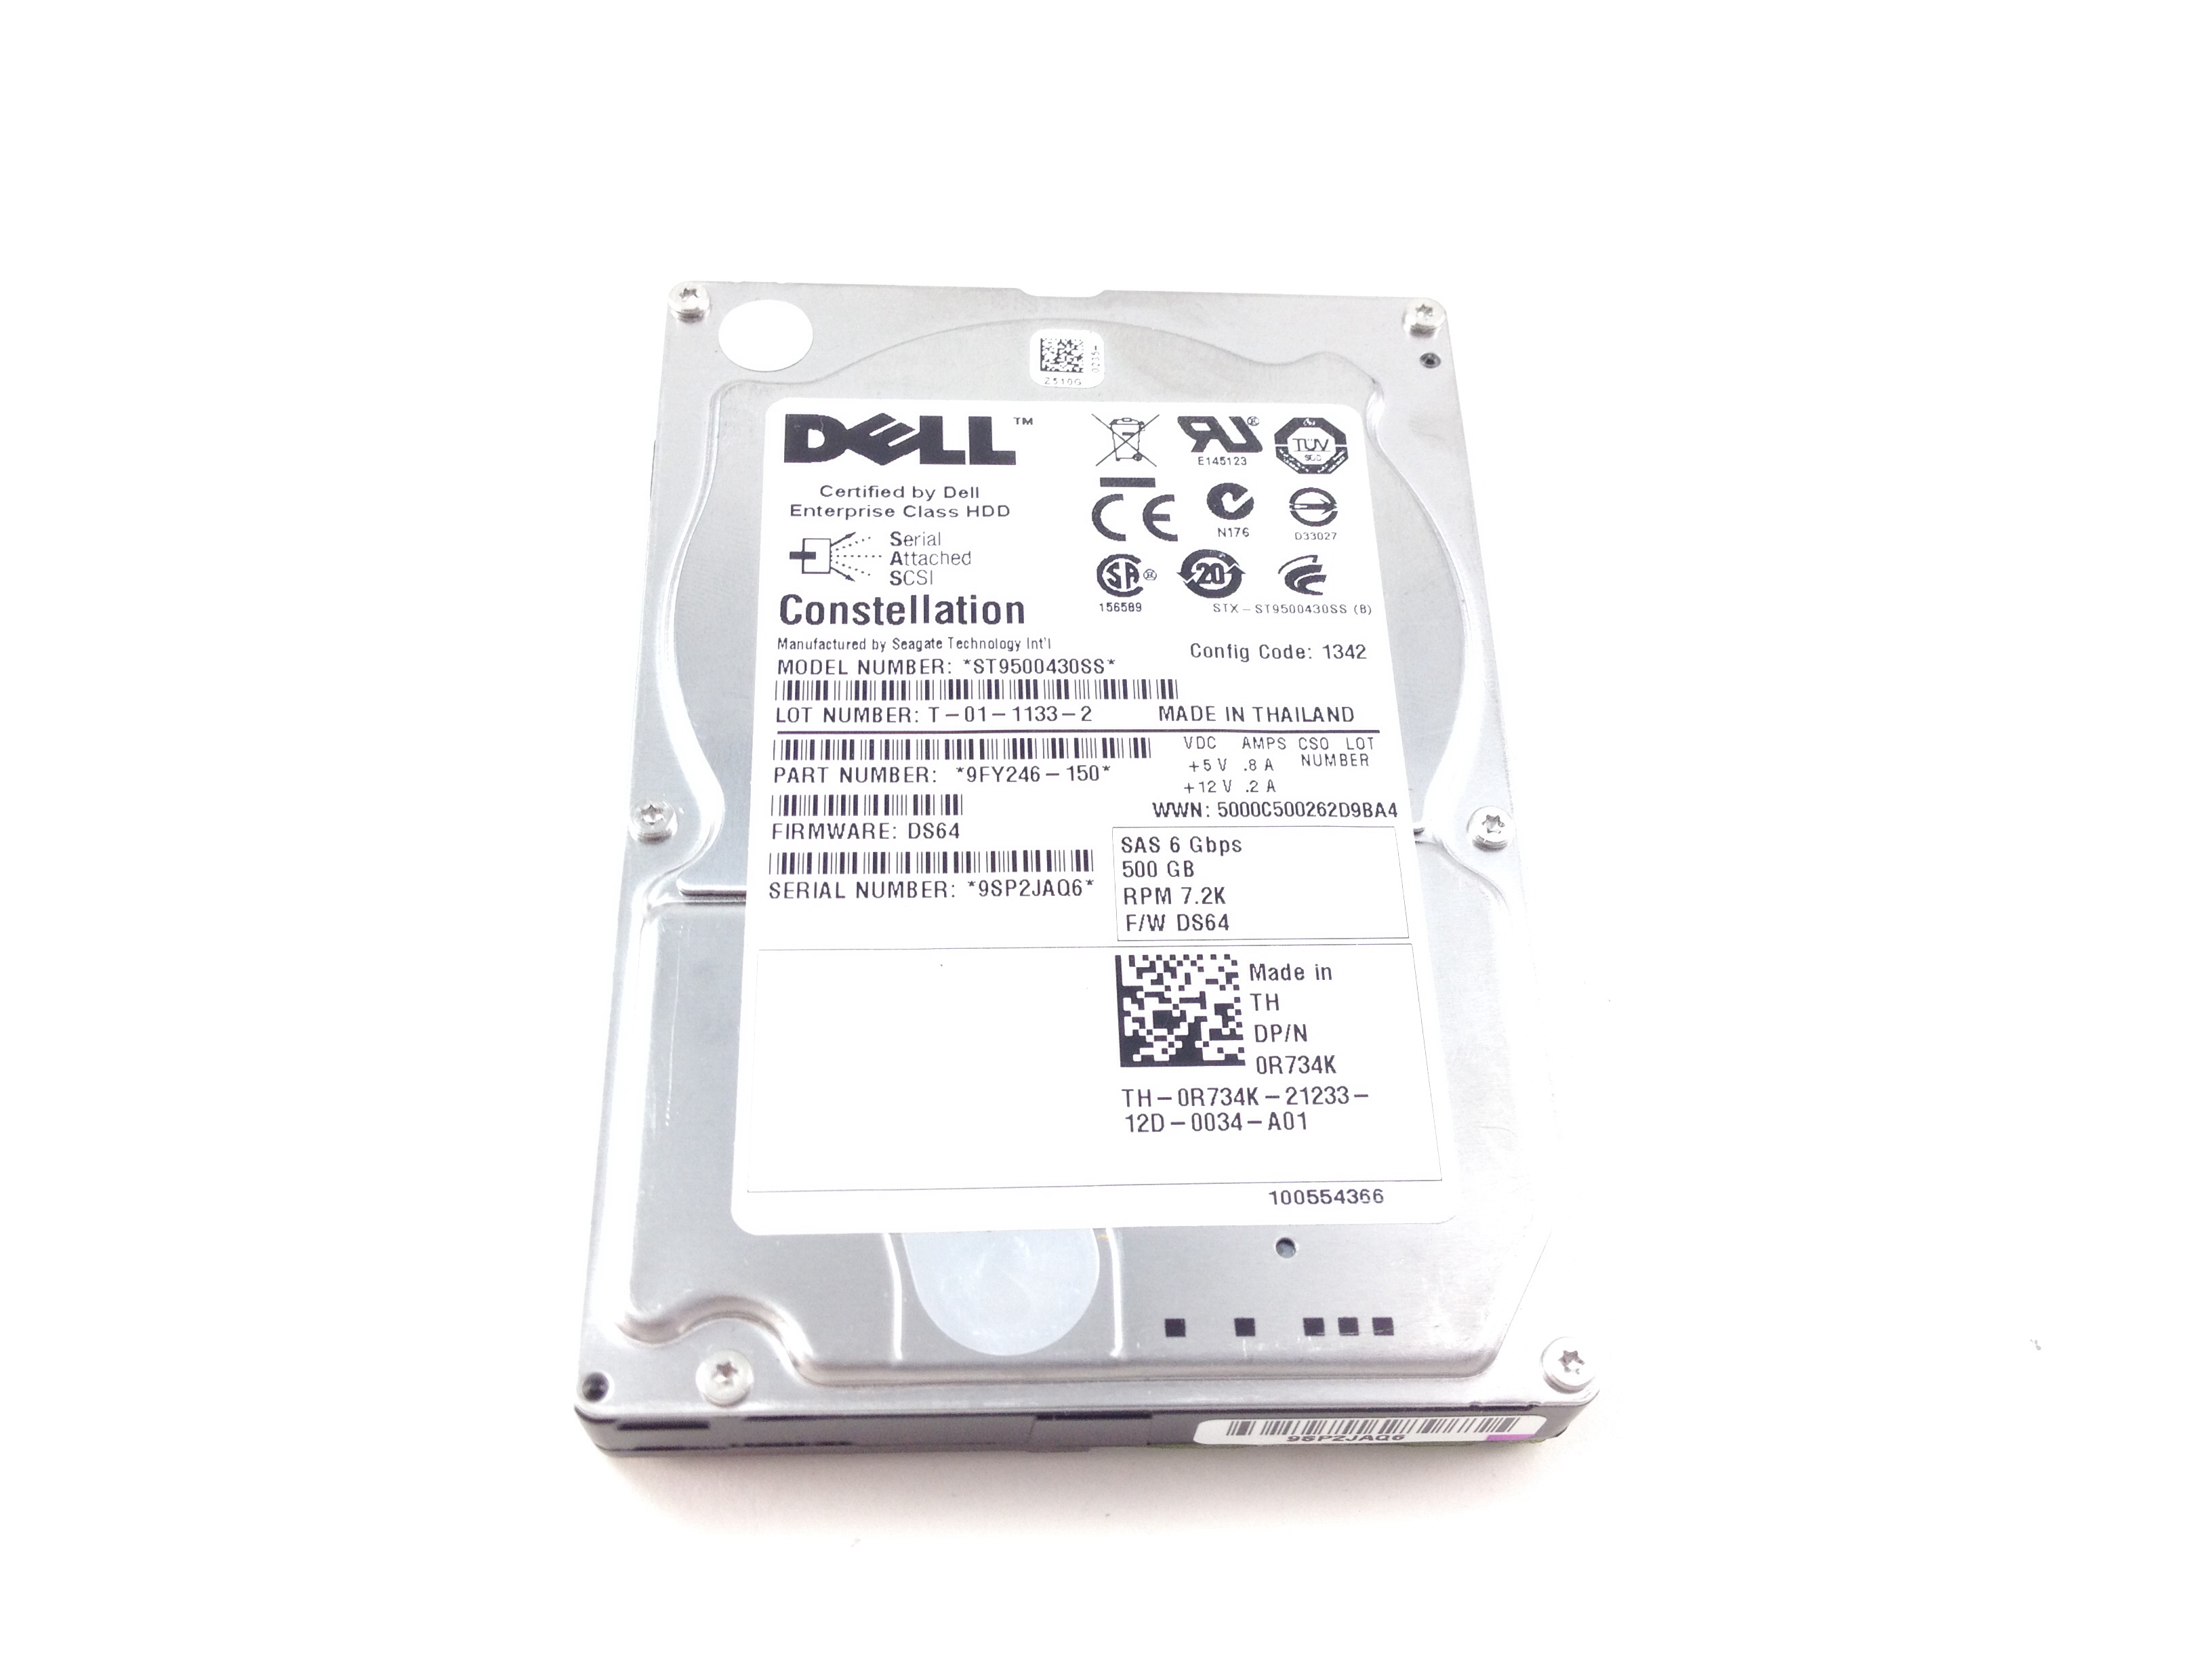 DELL CONSTELLATION 500GB 7.2K 6GBPS SAS 2.5'' HARD DRIVE (R734K)